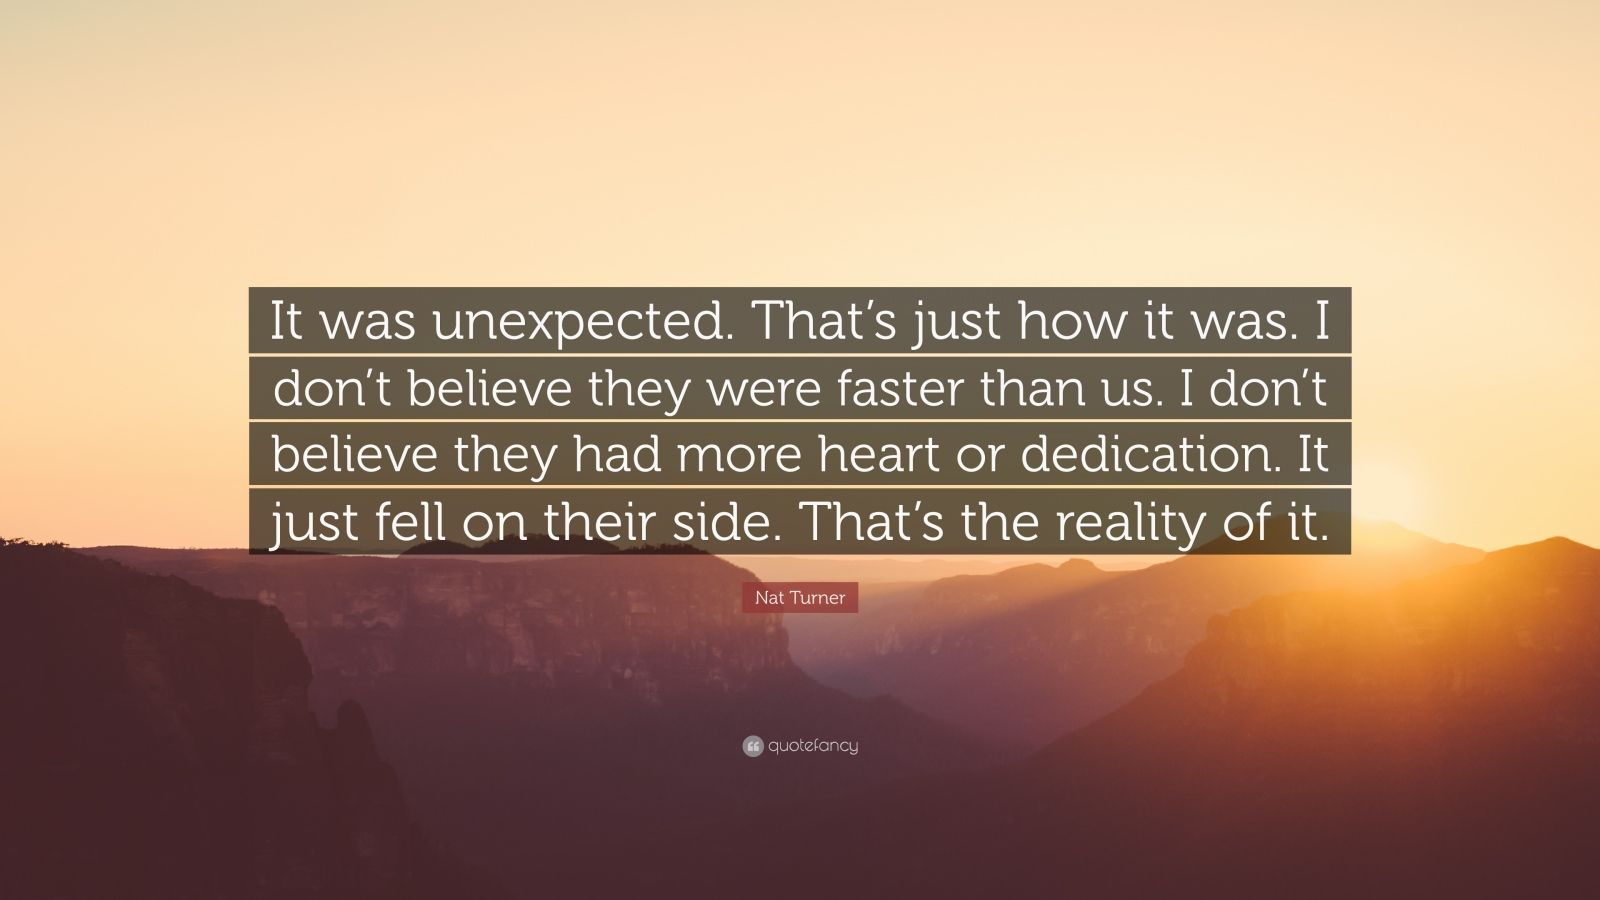 """Nat Turner Quote: """"It was unexpected. That's just how it was. I don't believe they were faster than us. I don't believe they had more heart or dedication. It just fell on their side. That's the reality of it."""""""